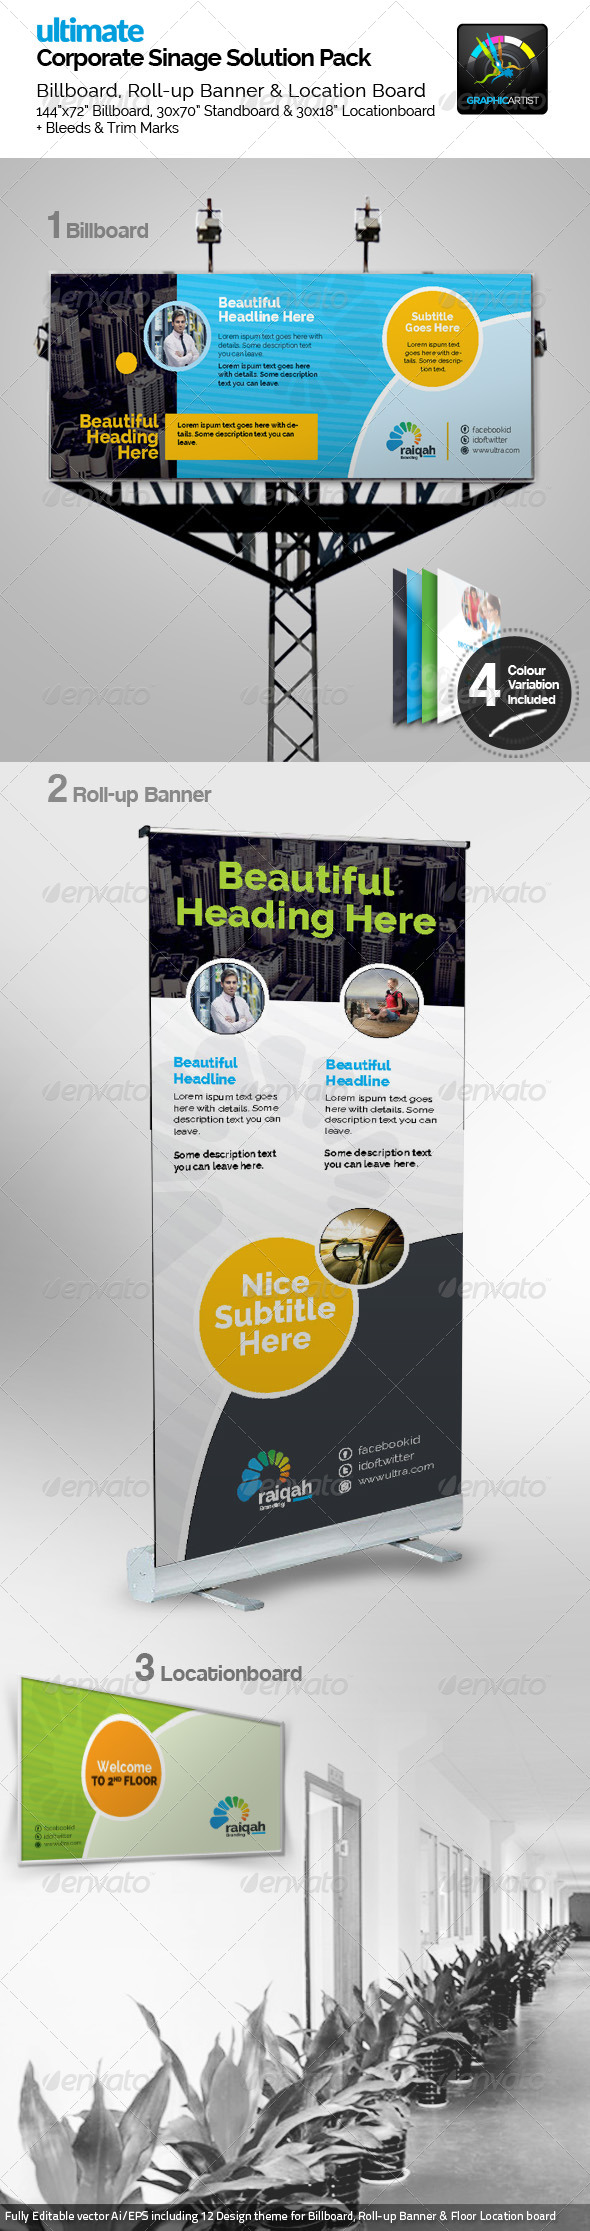 GraphicRiver Raiqah Corporate Signage Pack 7638841